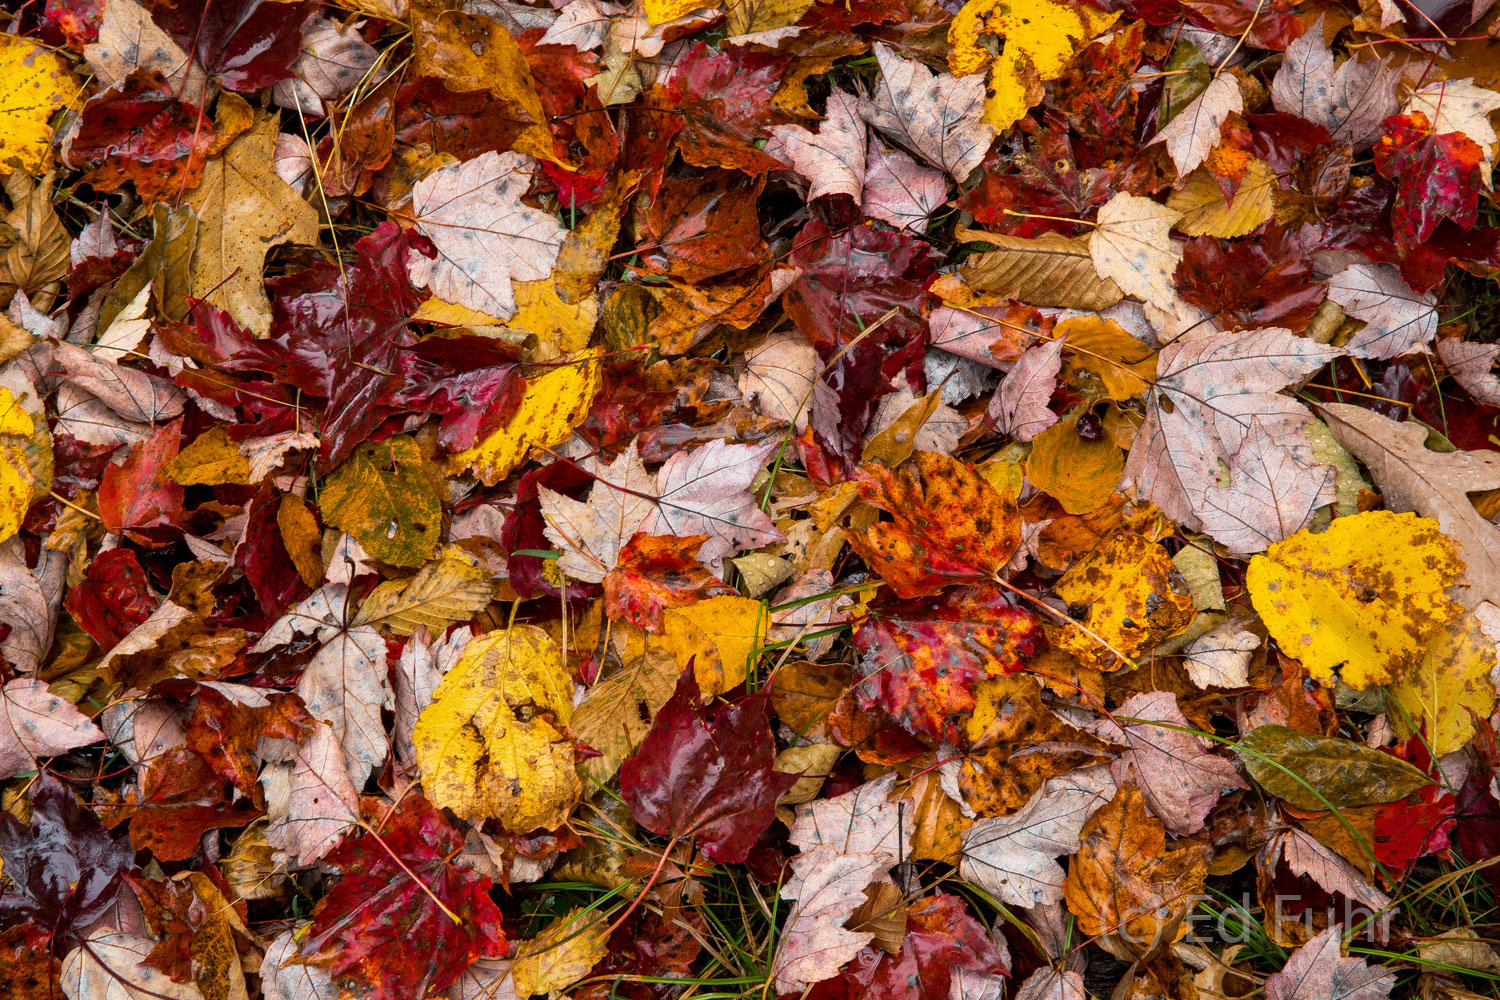 Shenandoah national park, image, photograph, autumn, leaves, photo